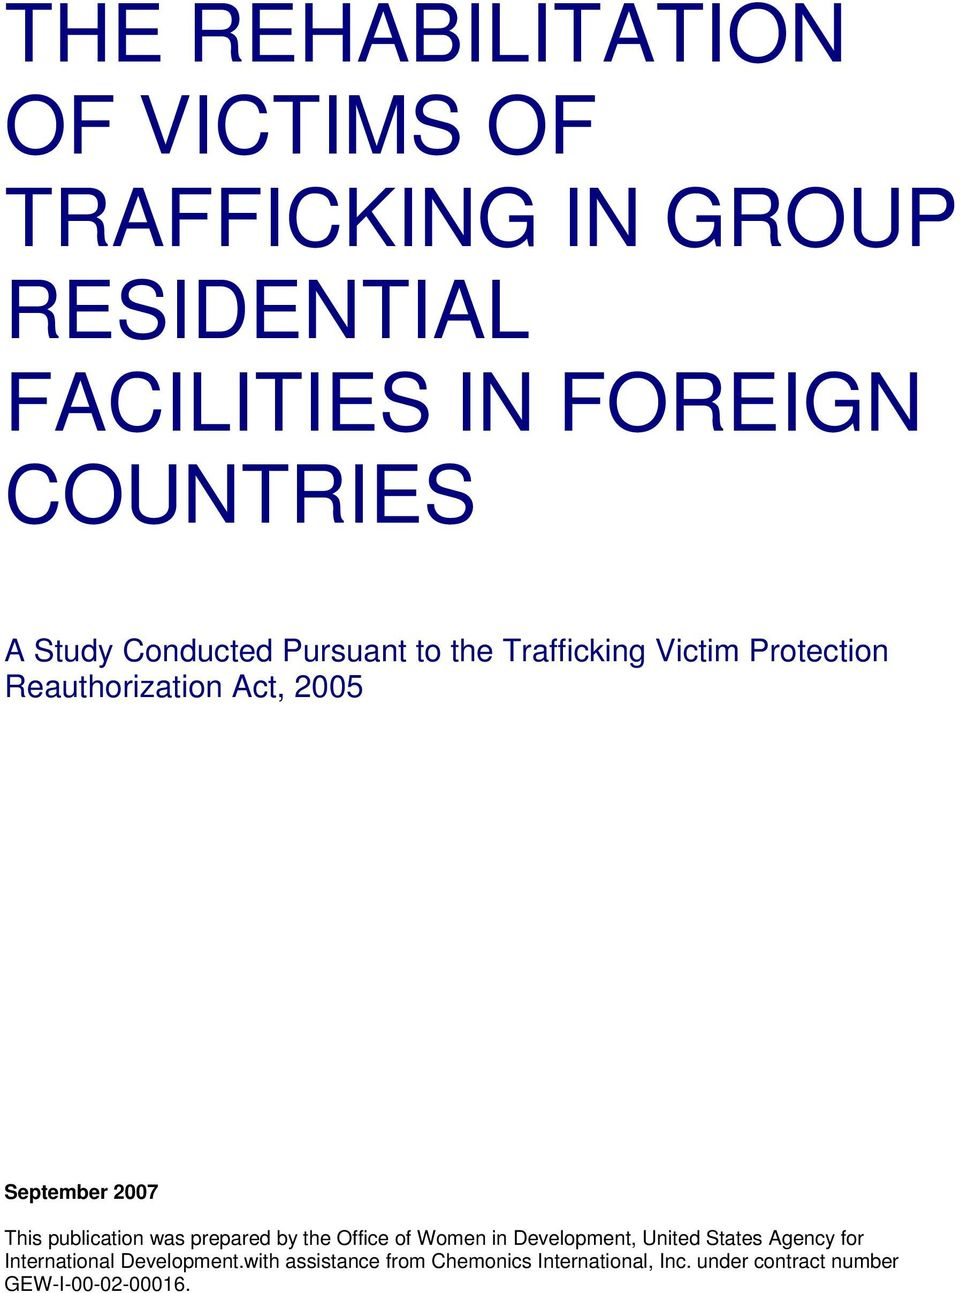 This publication was prepared by the Office of Women in Development, United States Agency for